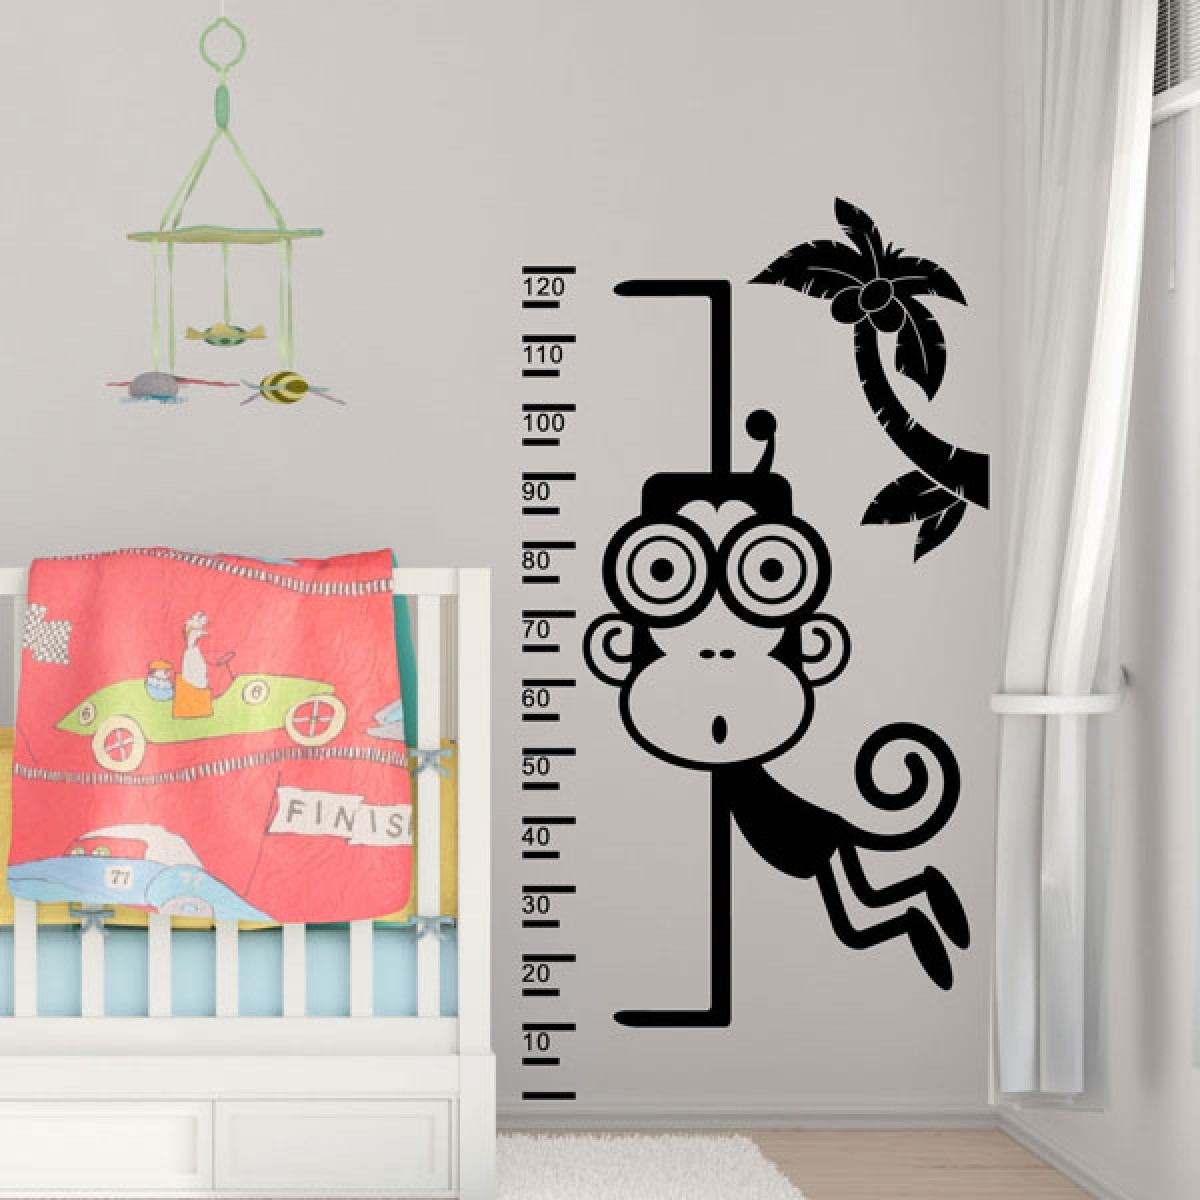 Childrens room wall stickers kids wall stickers monkey height chart wall sticker amipublicfo Choice Image